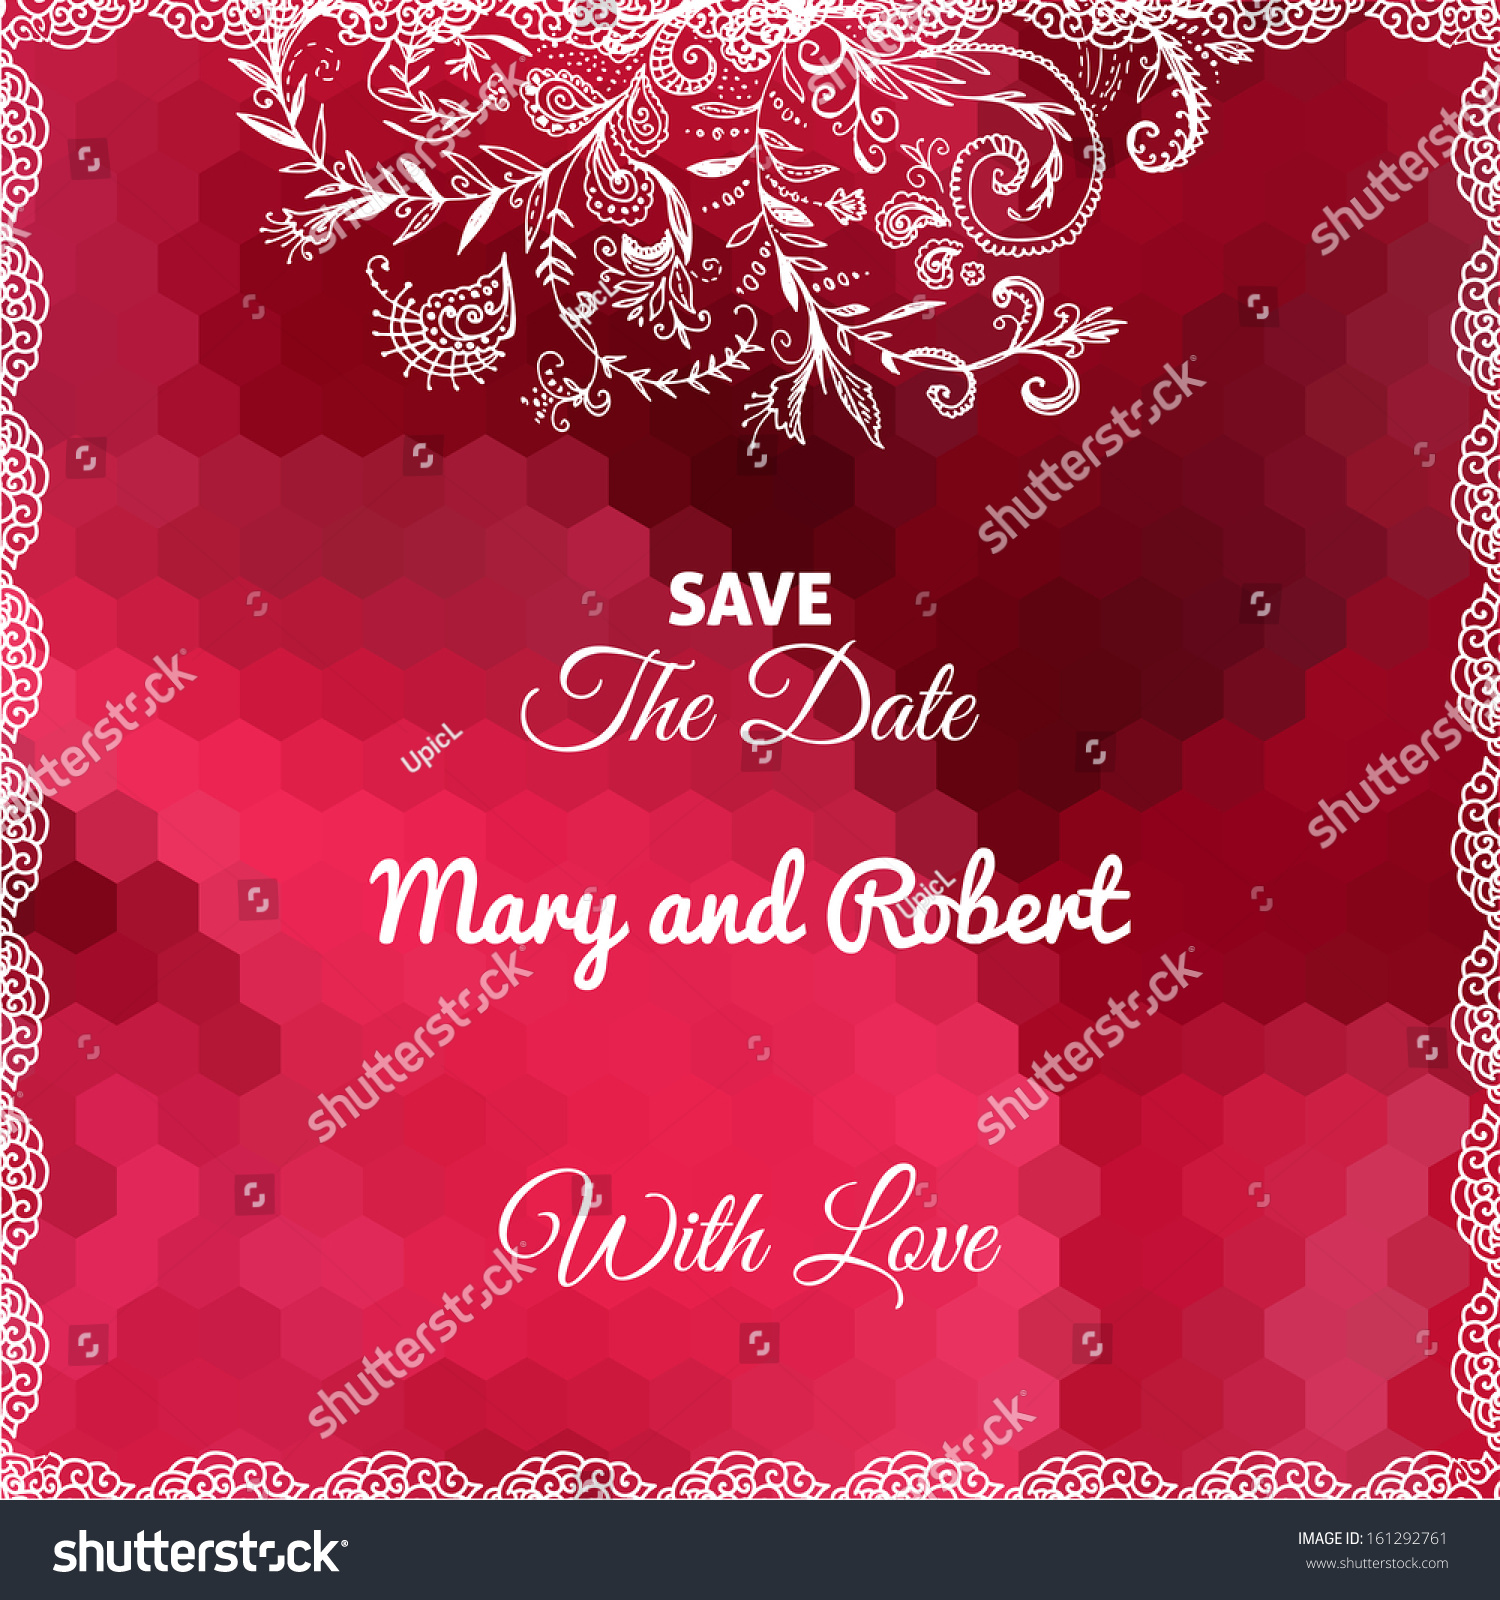 Wedding Invitation Card Doodle Ornament On Stock Vector (Royalty ...